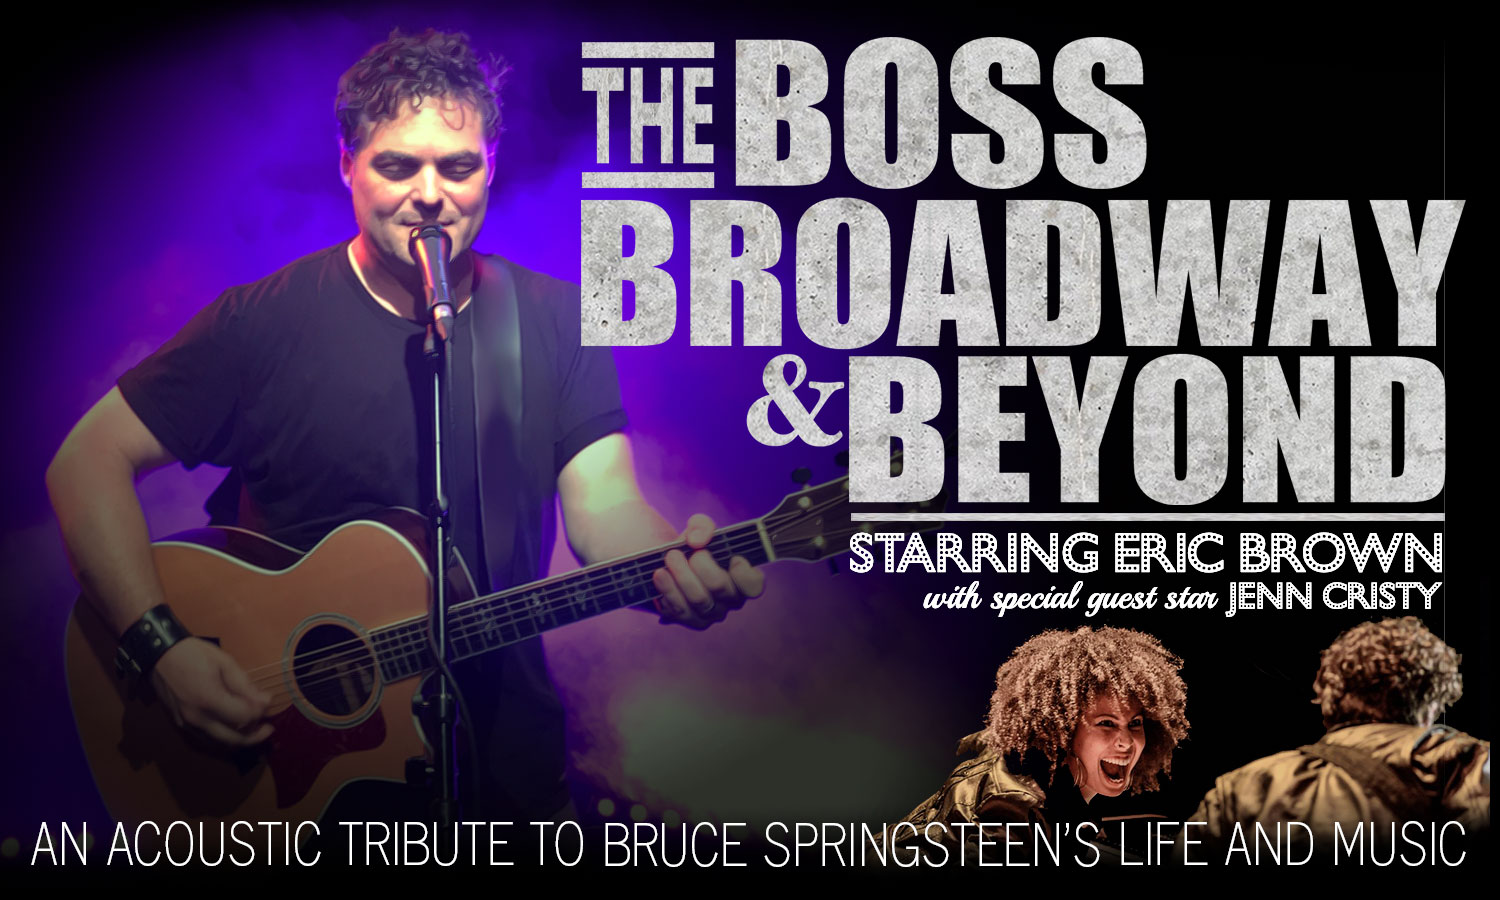 The-BOSS-Broadway-Website-banner-A.jpg